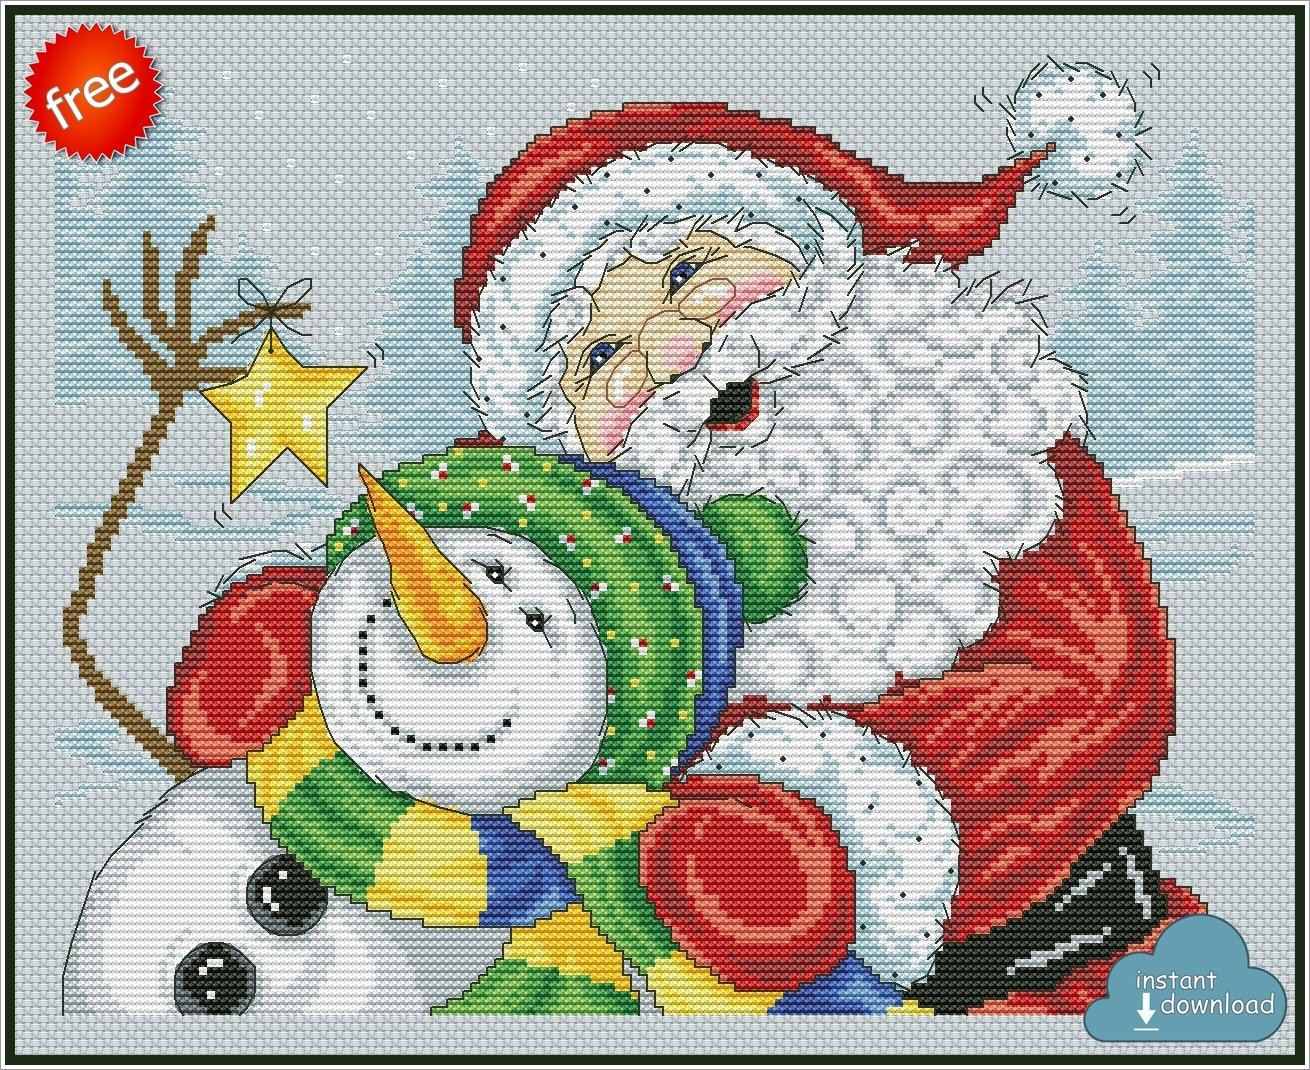 Merry Christmas Santa Snowman Cross Stitch Pattern PDF + XSD. Instant Download. Free